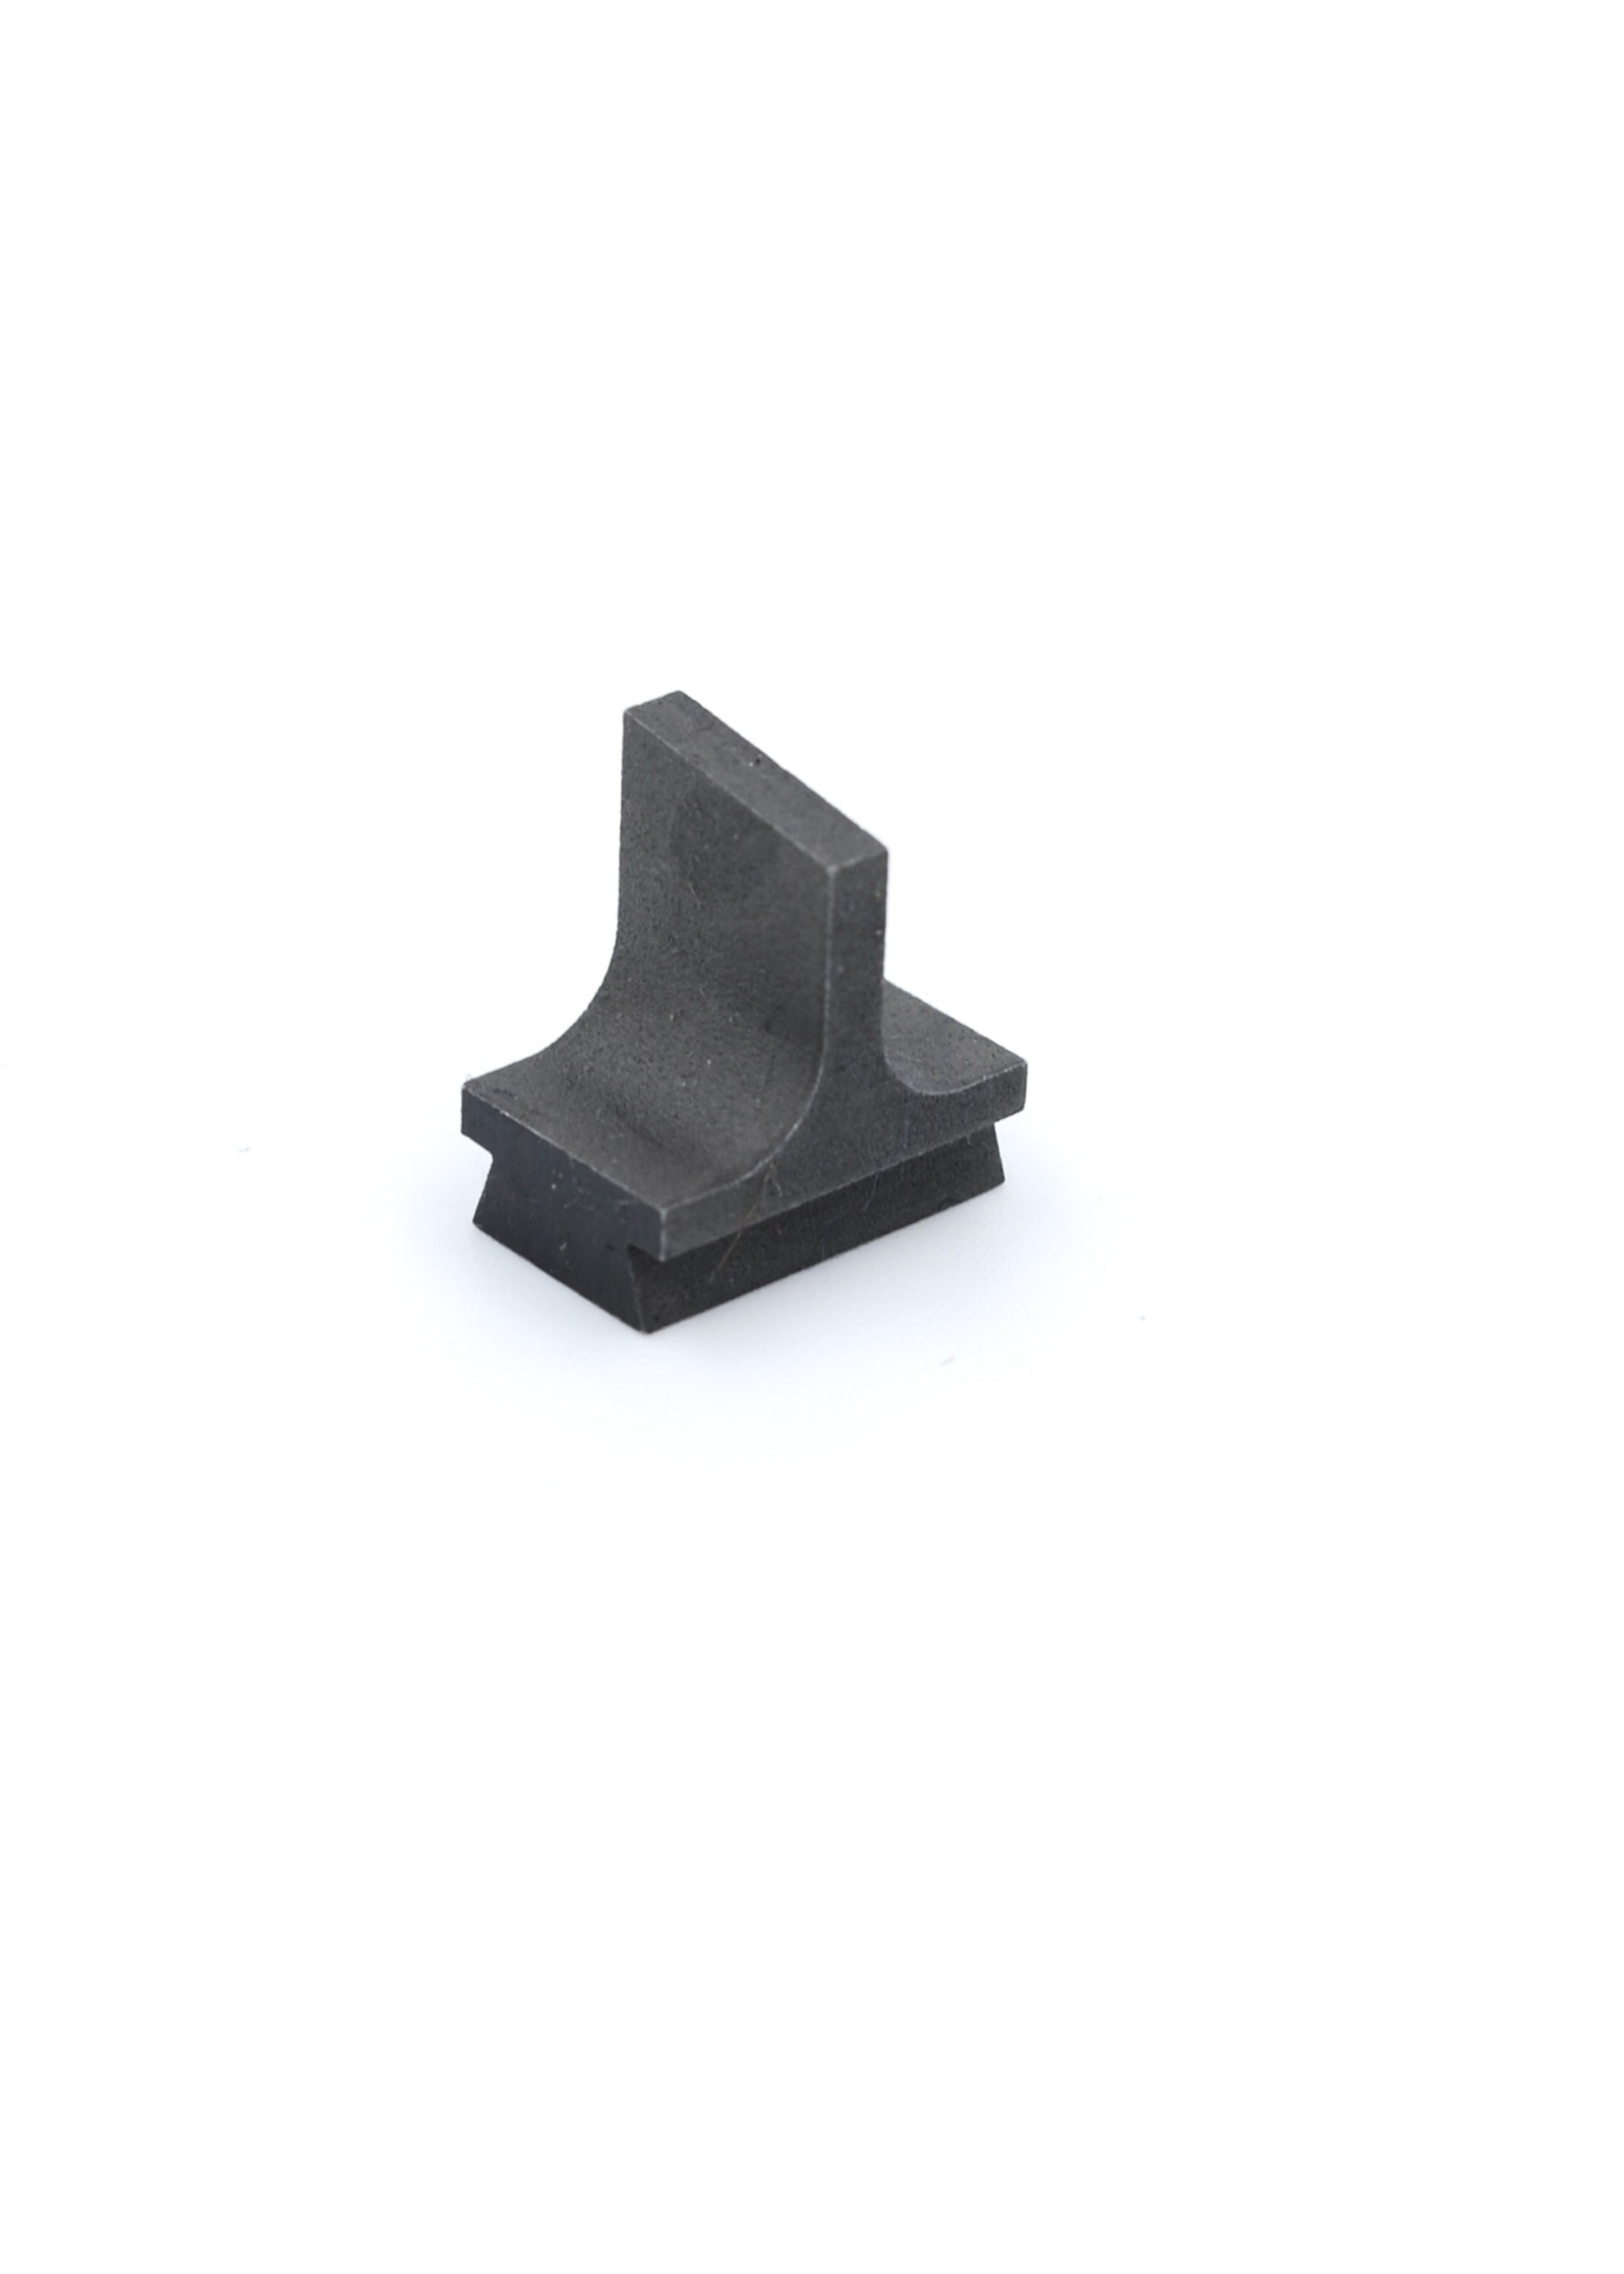 G43 Front Sight